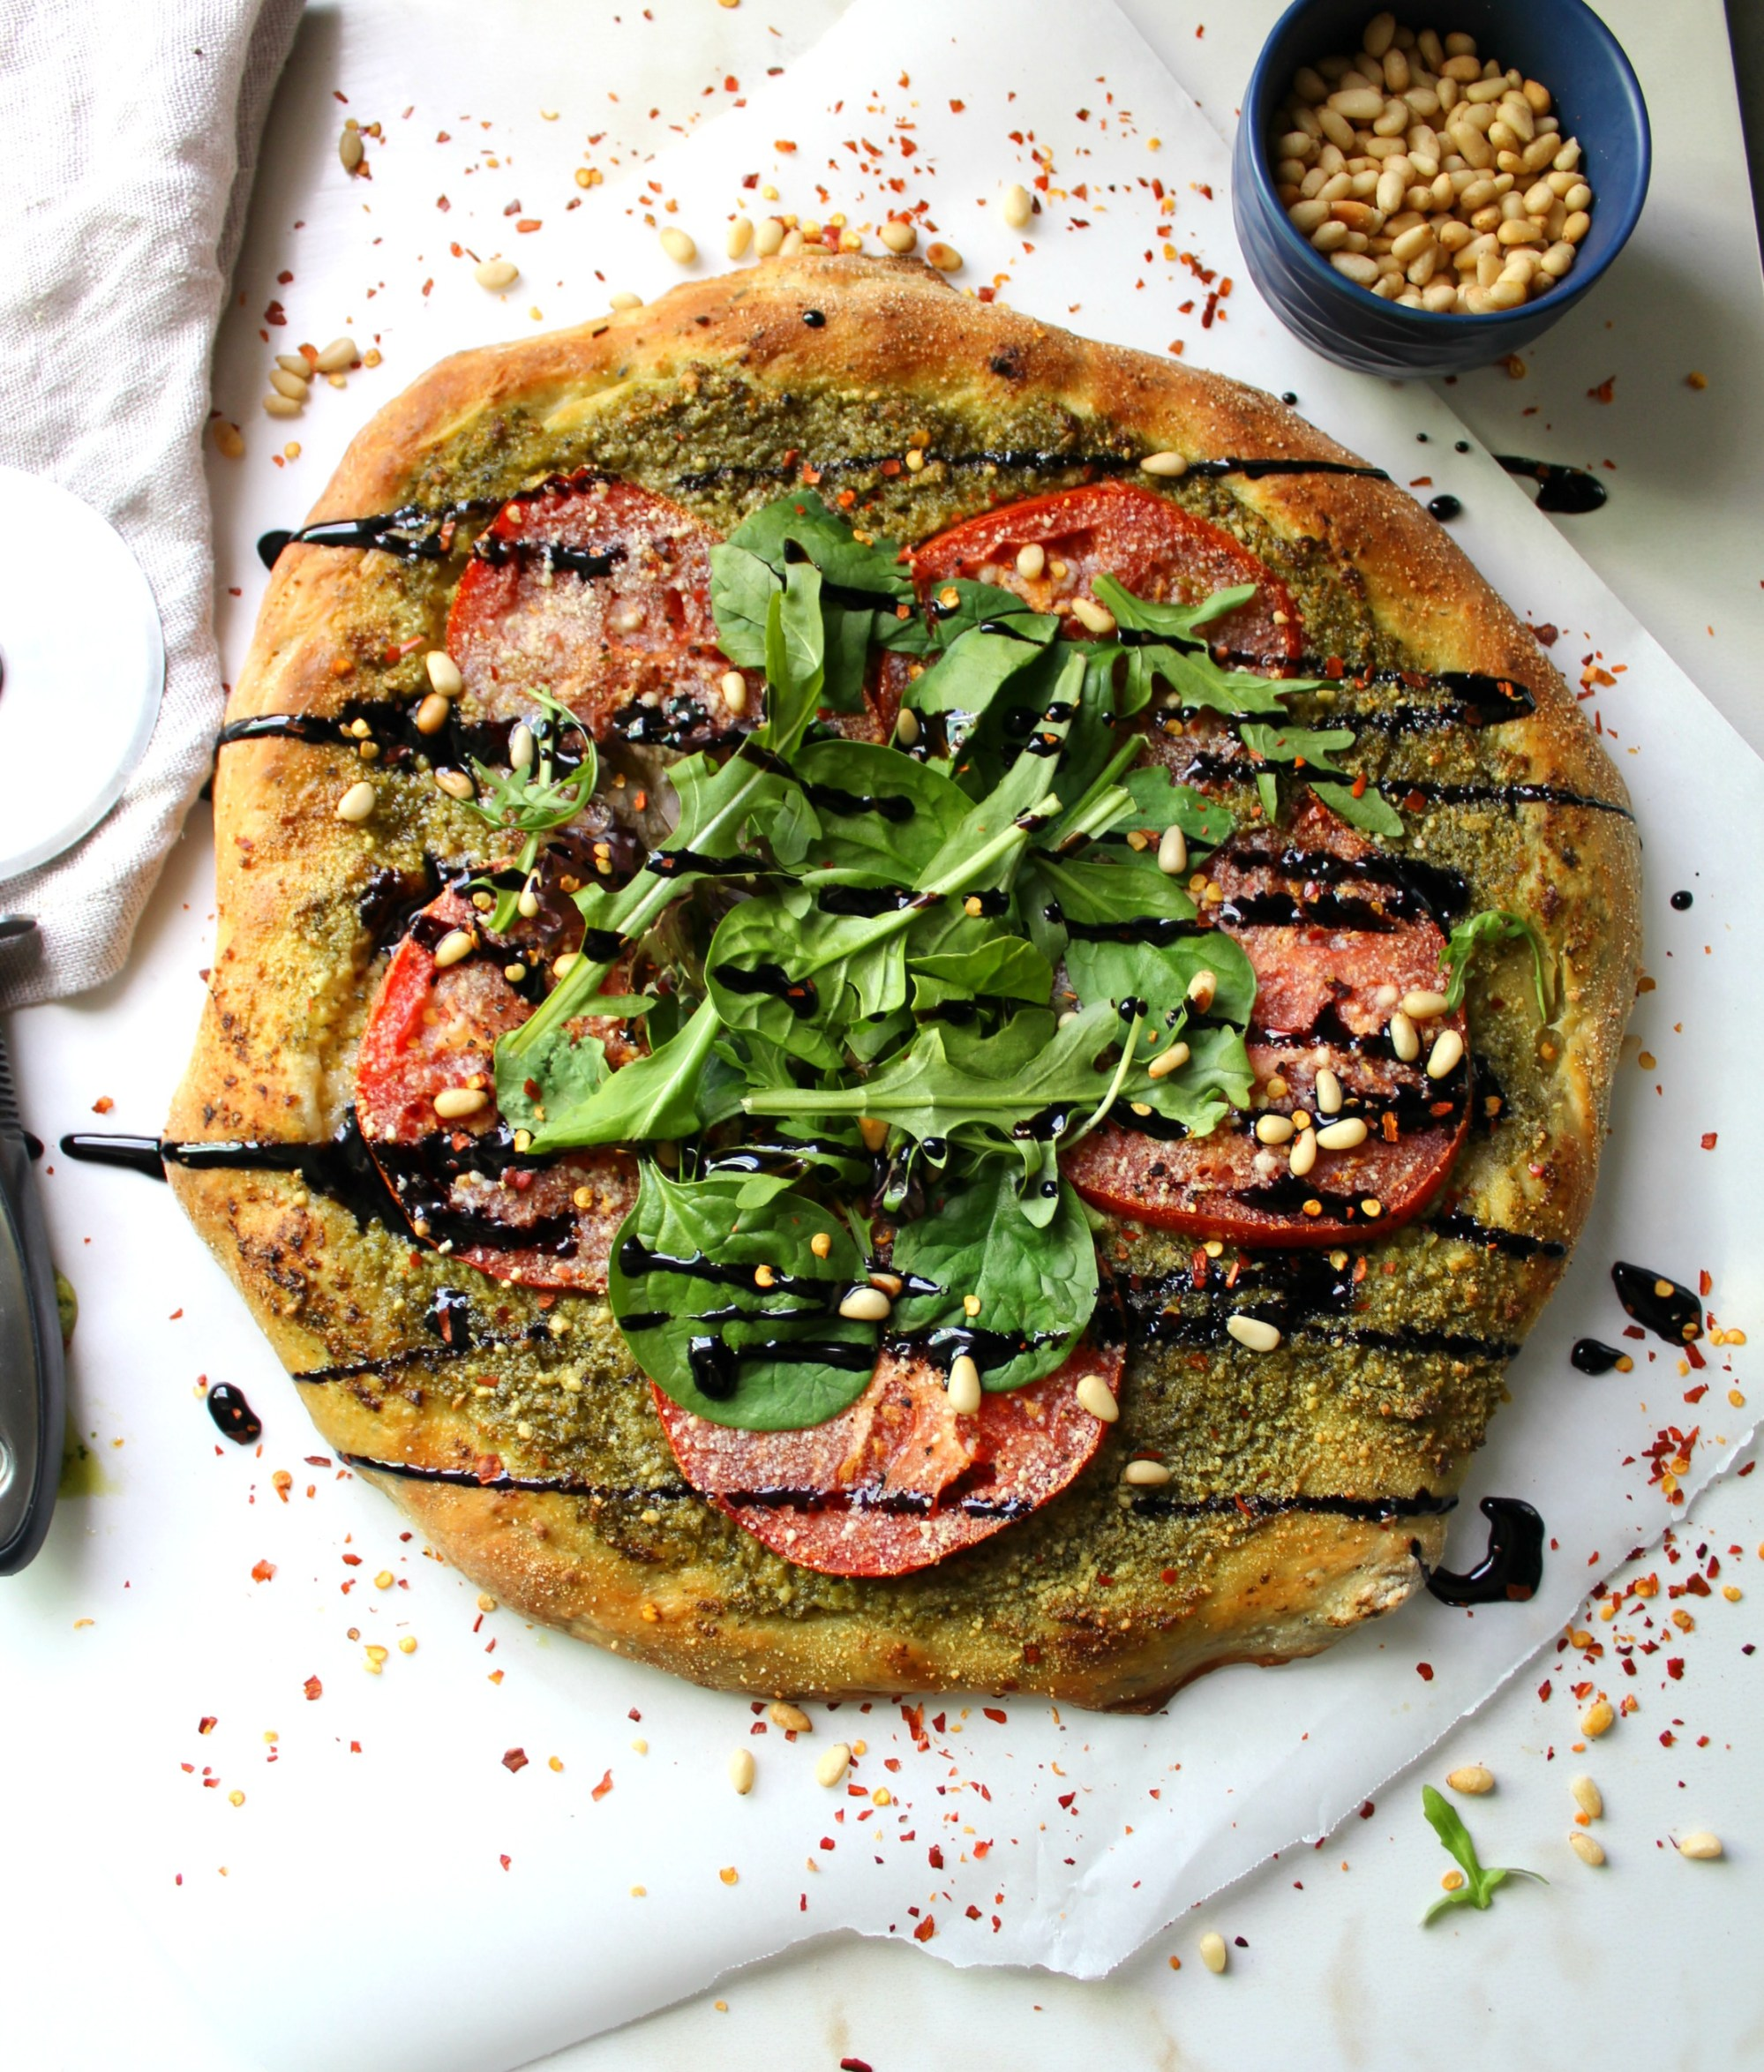 15 mouthwatering ways to use homemade basil pesto in your cooking: Vegan Pesto Pizza with Balsamic Glaze by This Savory Vegan